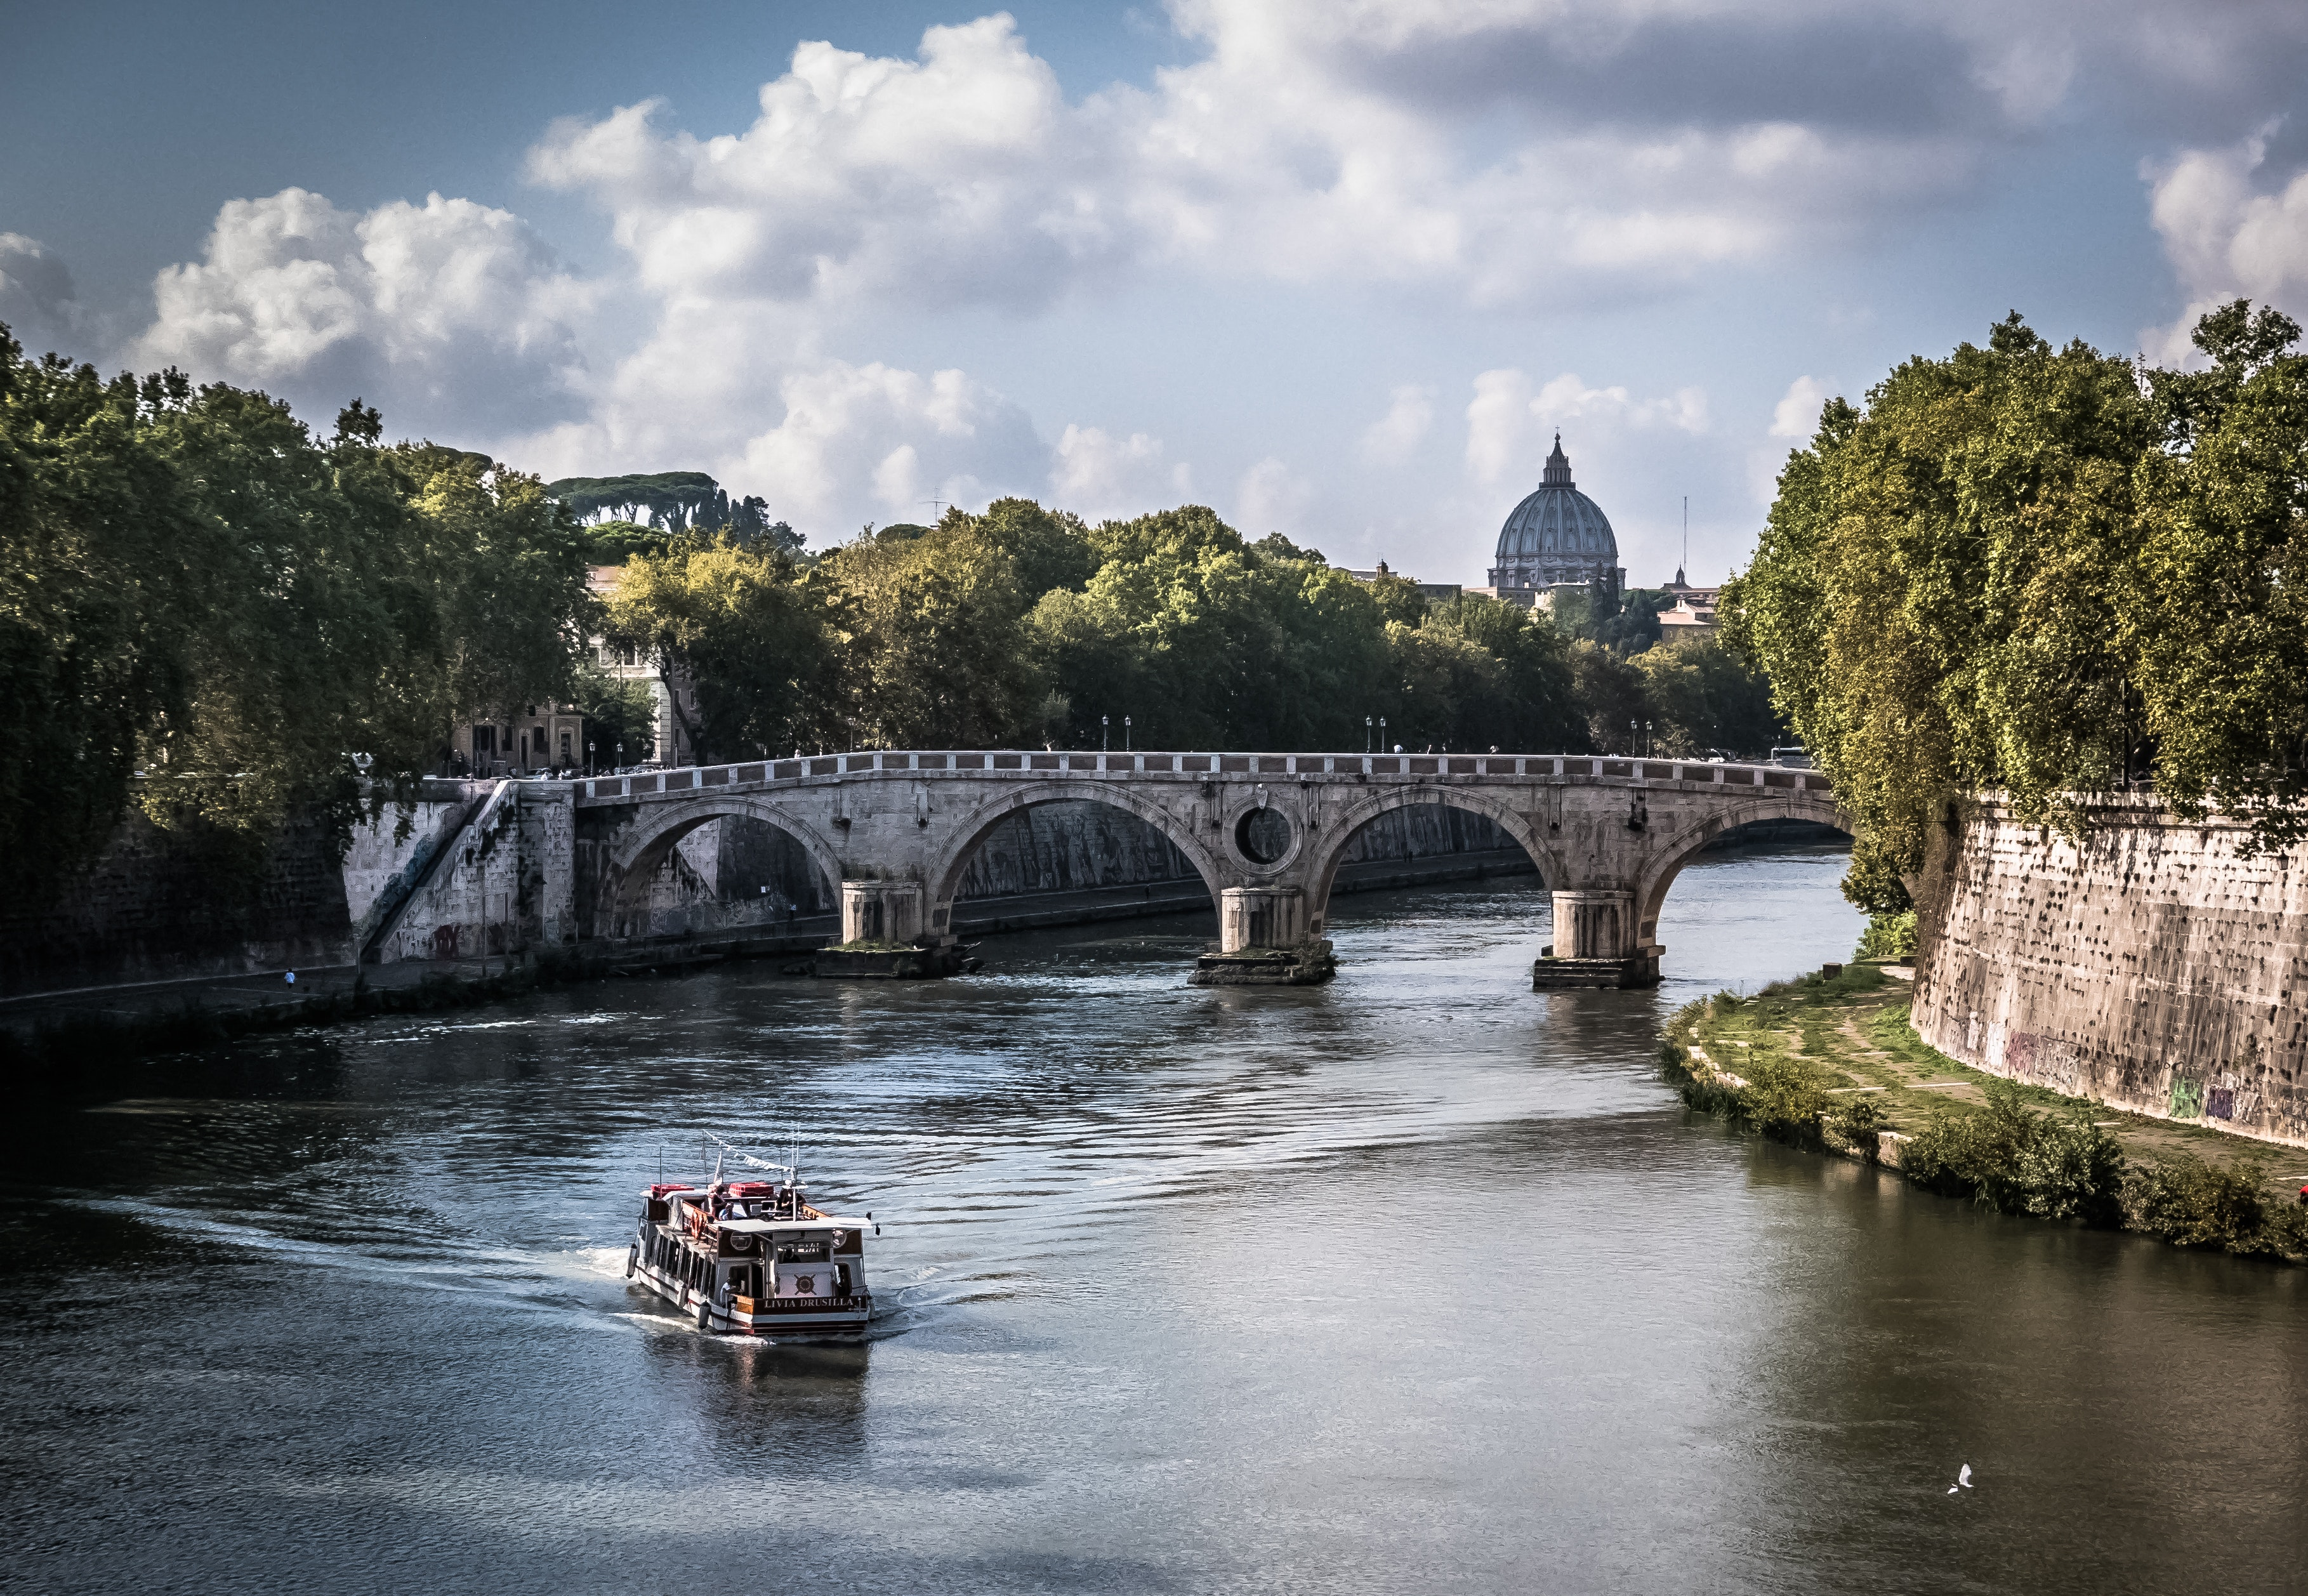 5 Days in Rome: An itinerary for first-time visitors